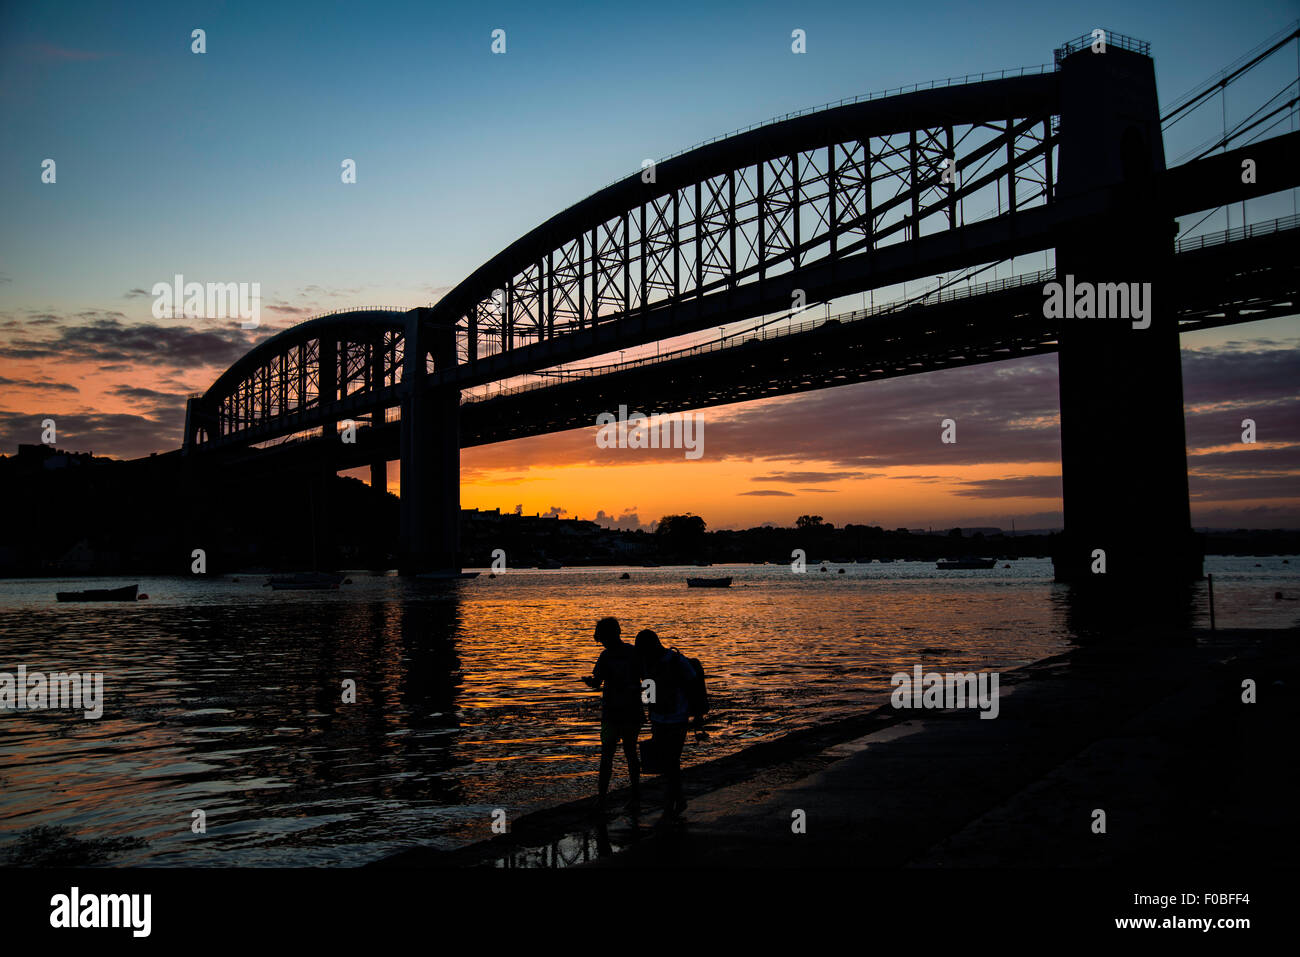 Two boys walking home along the river bank after a days fishing with the Albert Bridge and setting sun in the background. - Stock Image